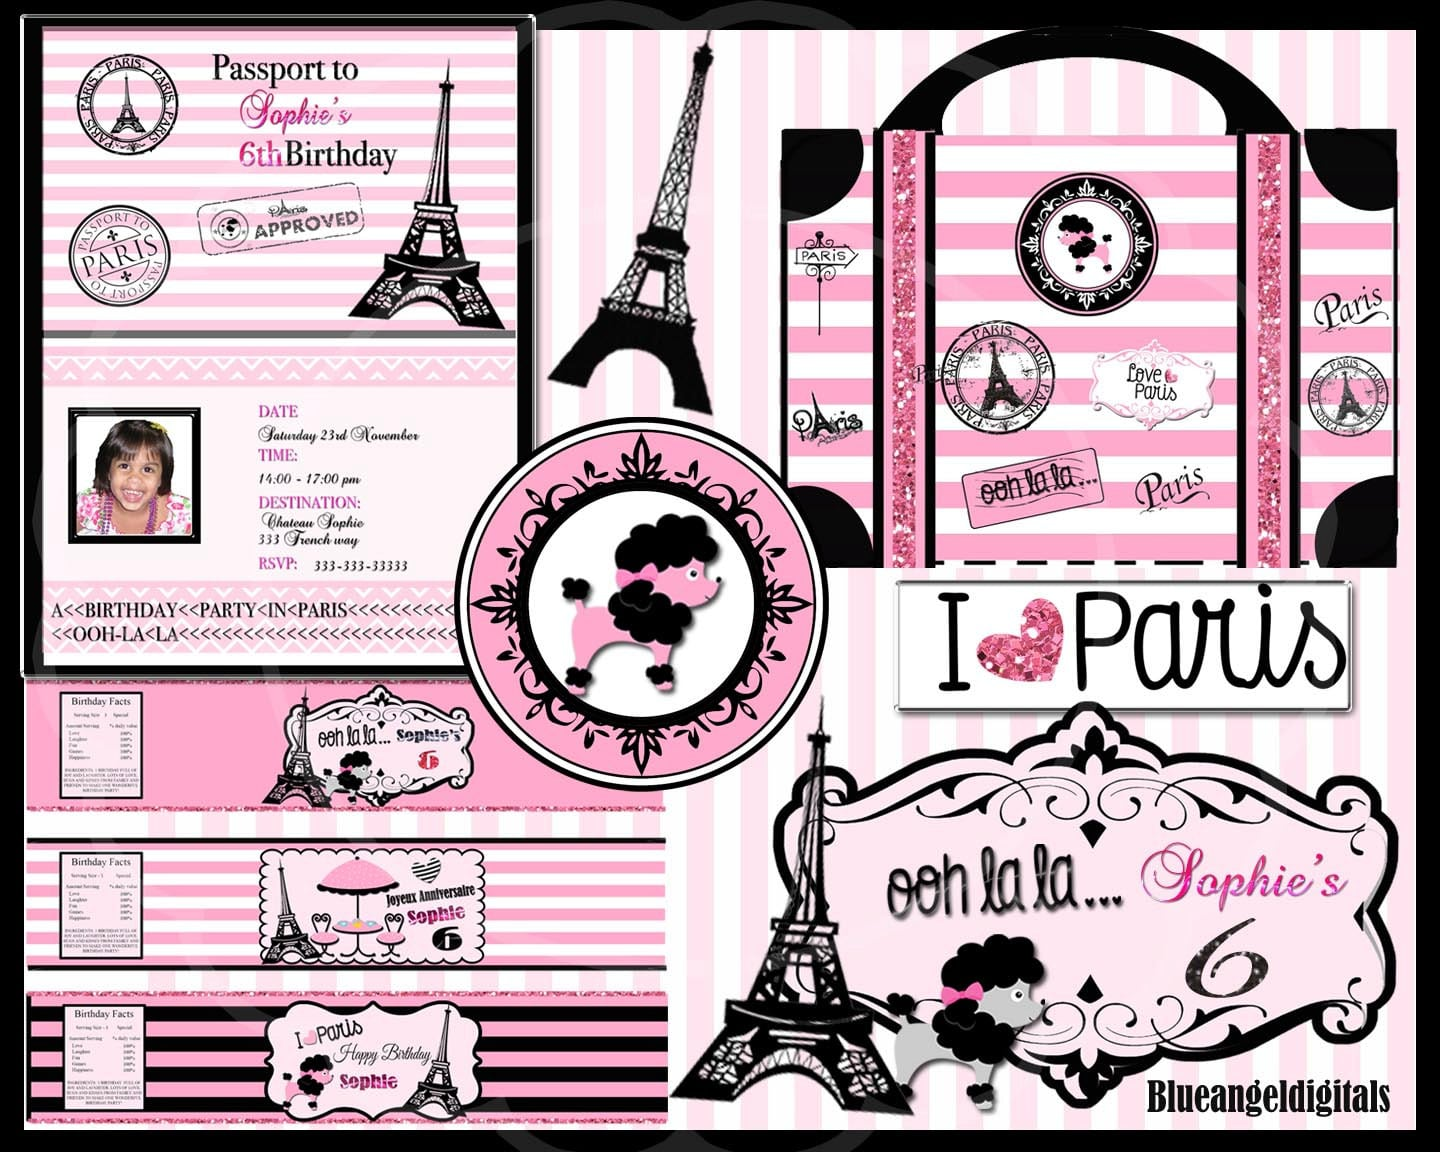 Paris themed party invitations mickey mouse invitations templates paris themed party invitations filmwisefo Gallery